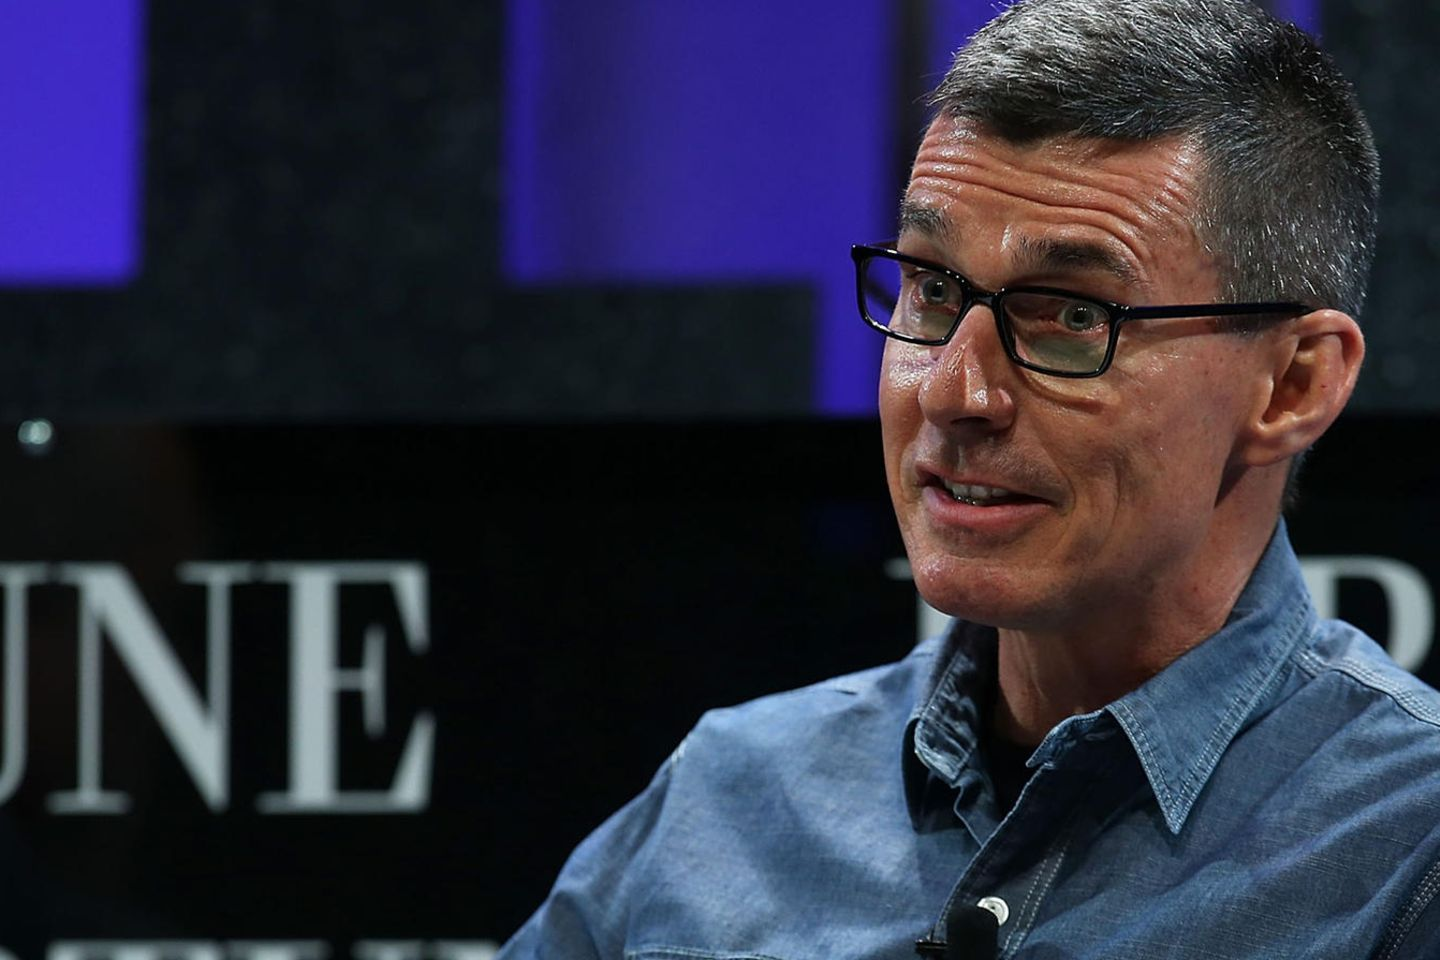 Levi's Chef Chip Bergh.